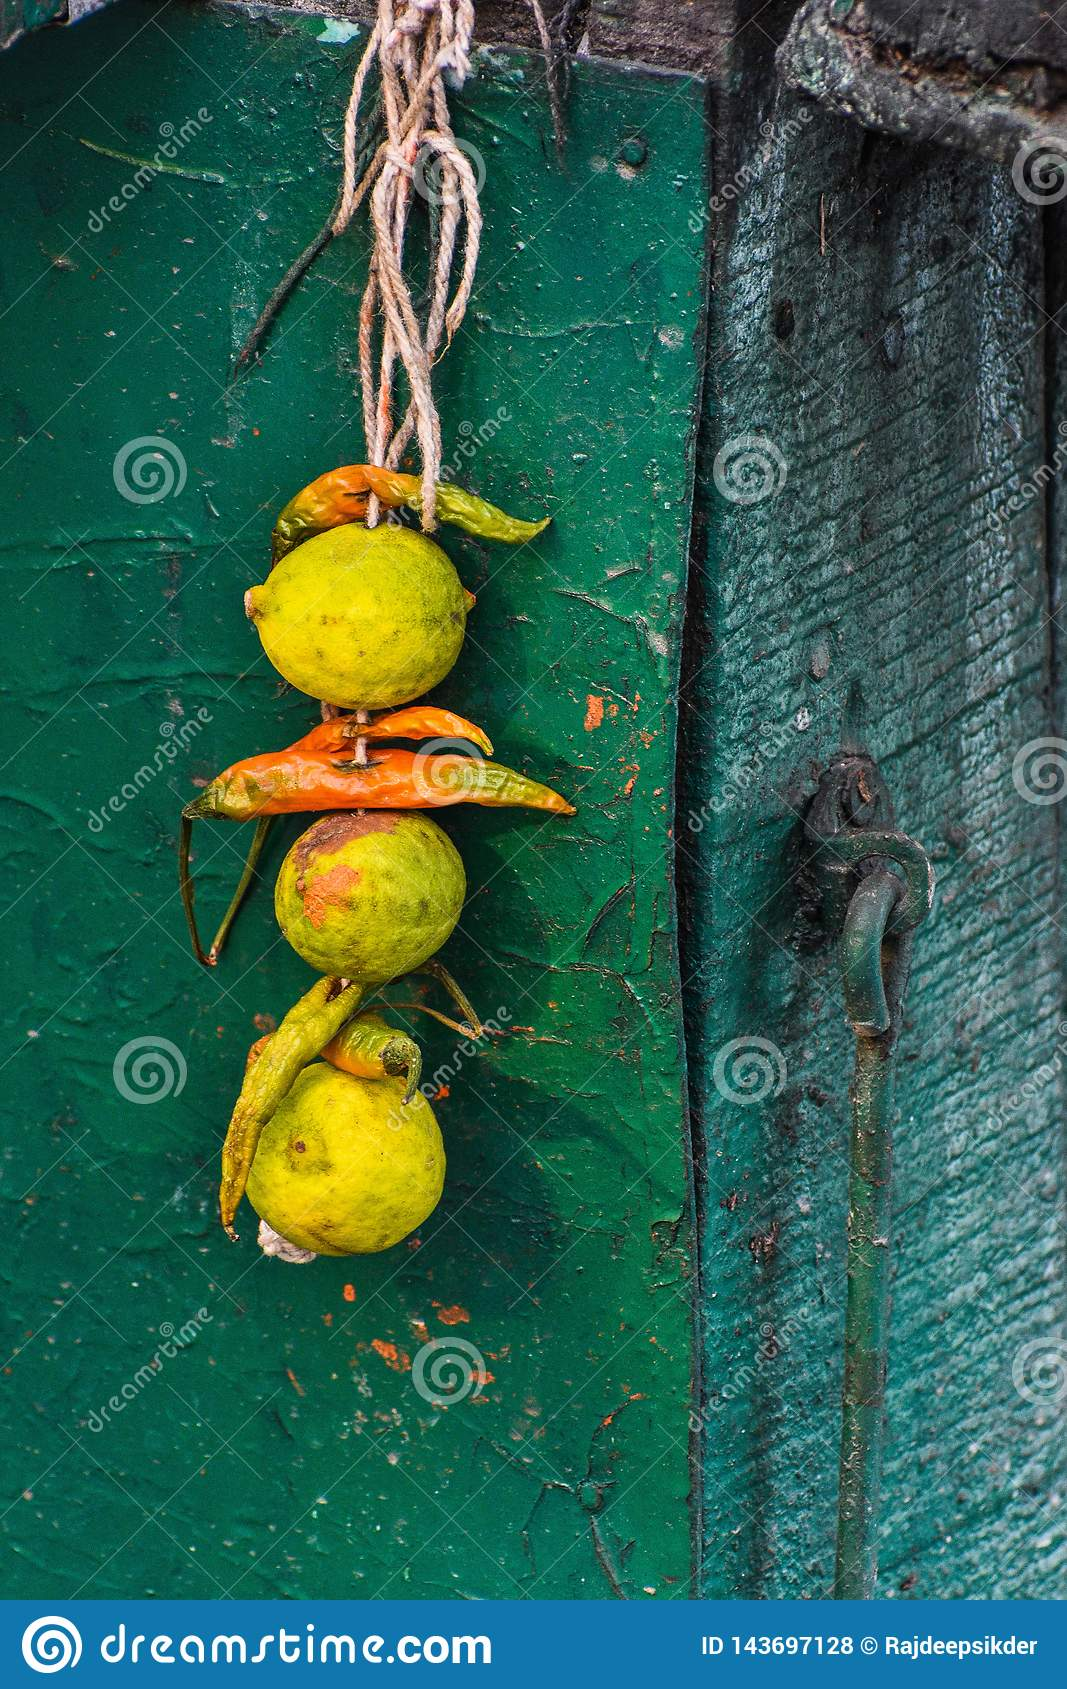 Lemon and chilies tied together with a thread, also known as totka or nazar battu.